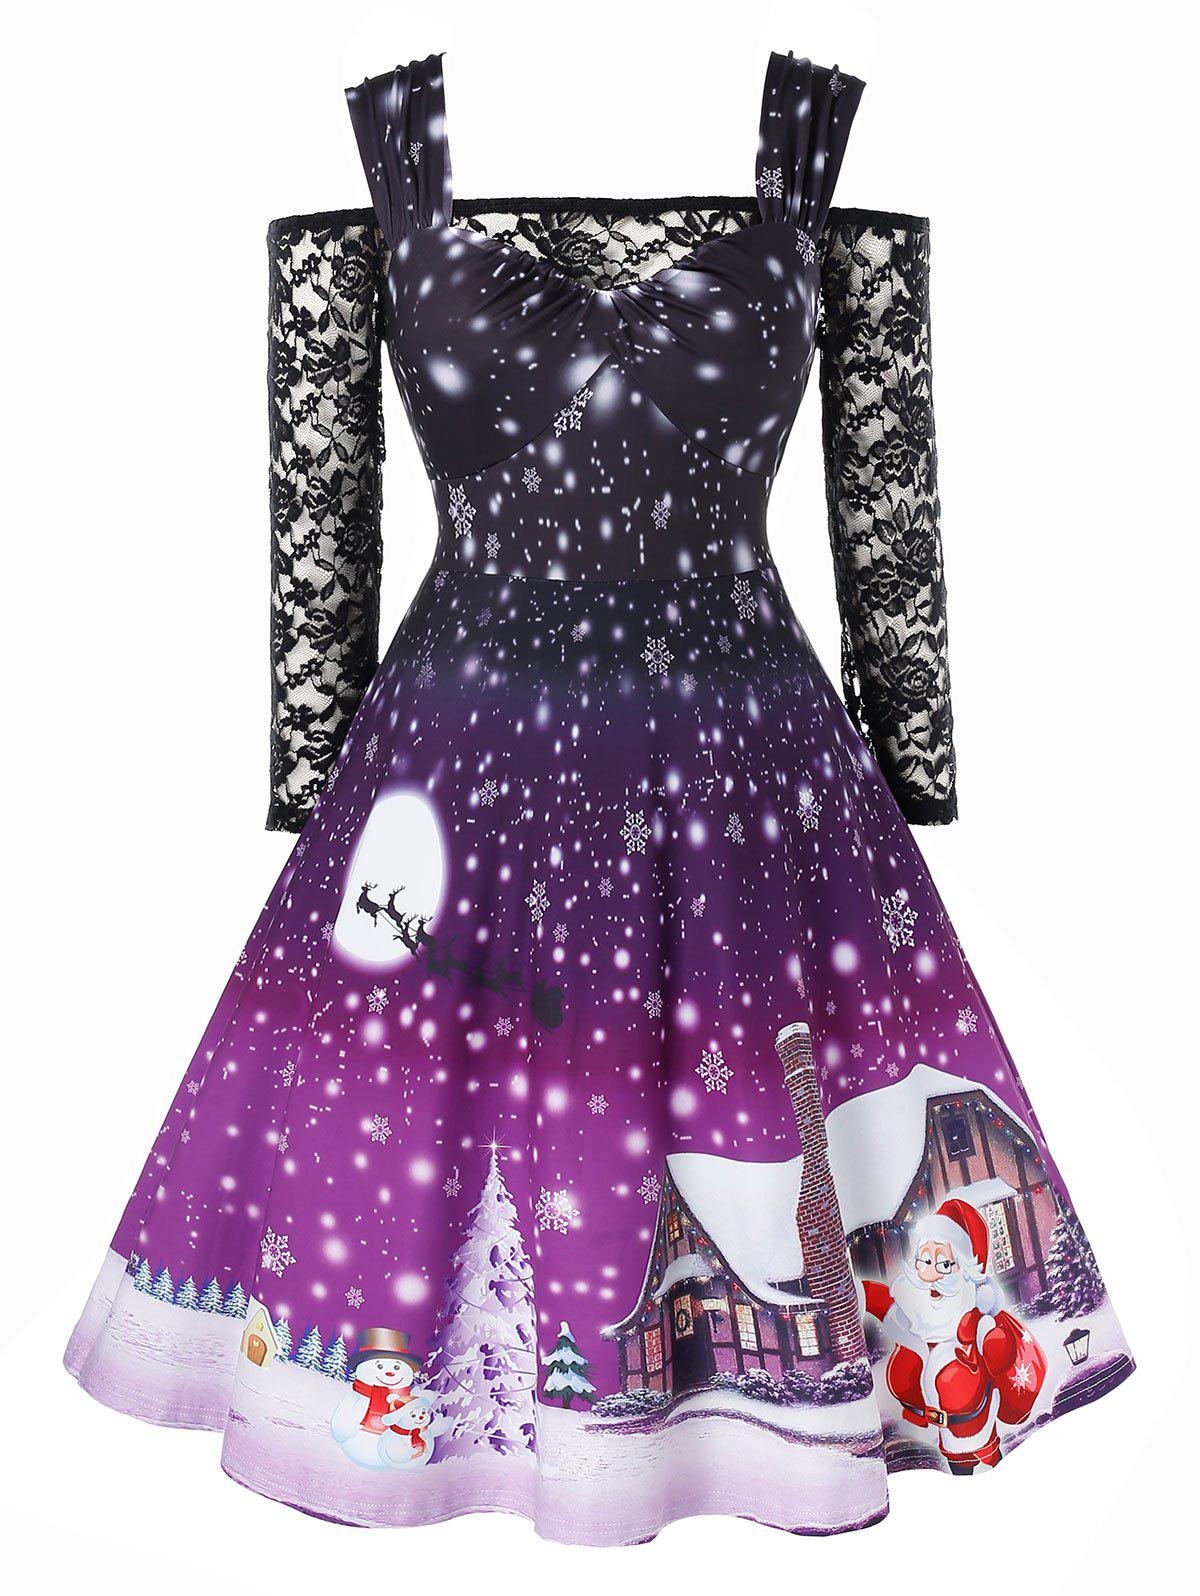 Plus Size Sweetheart Neck Christmas Vintage Dress with Lace T Shirt - PURPLE FLOWER 5X